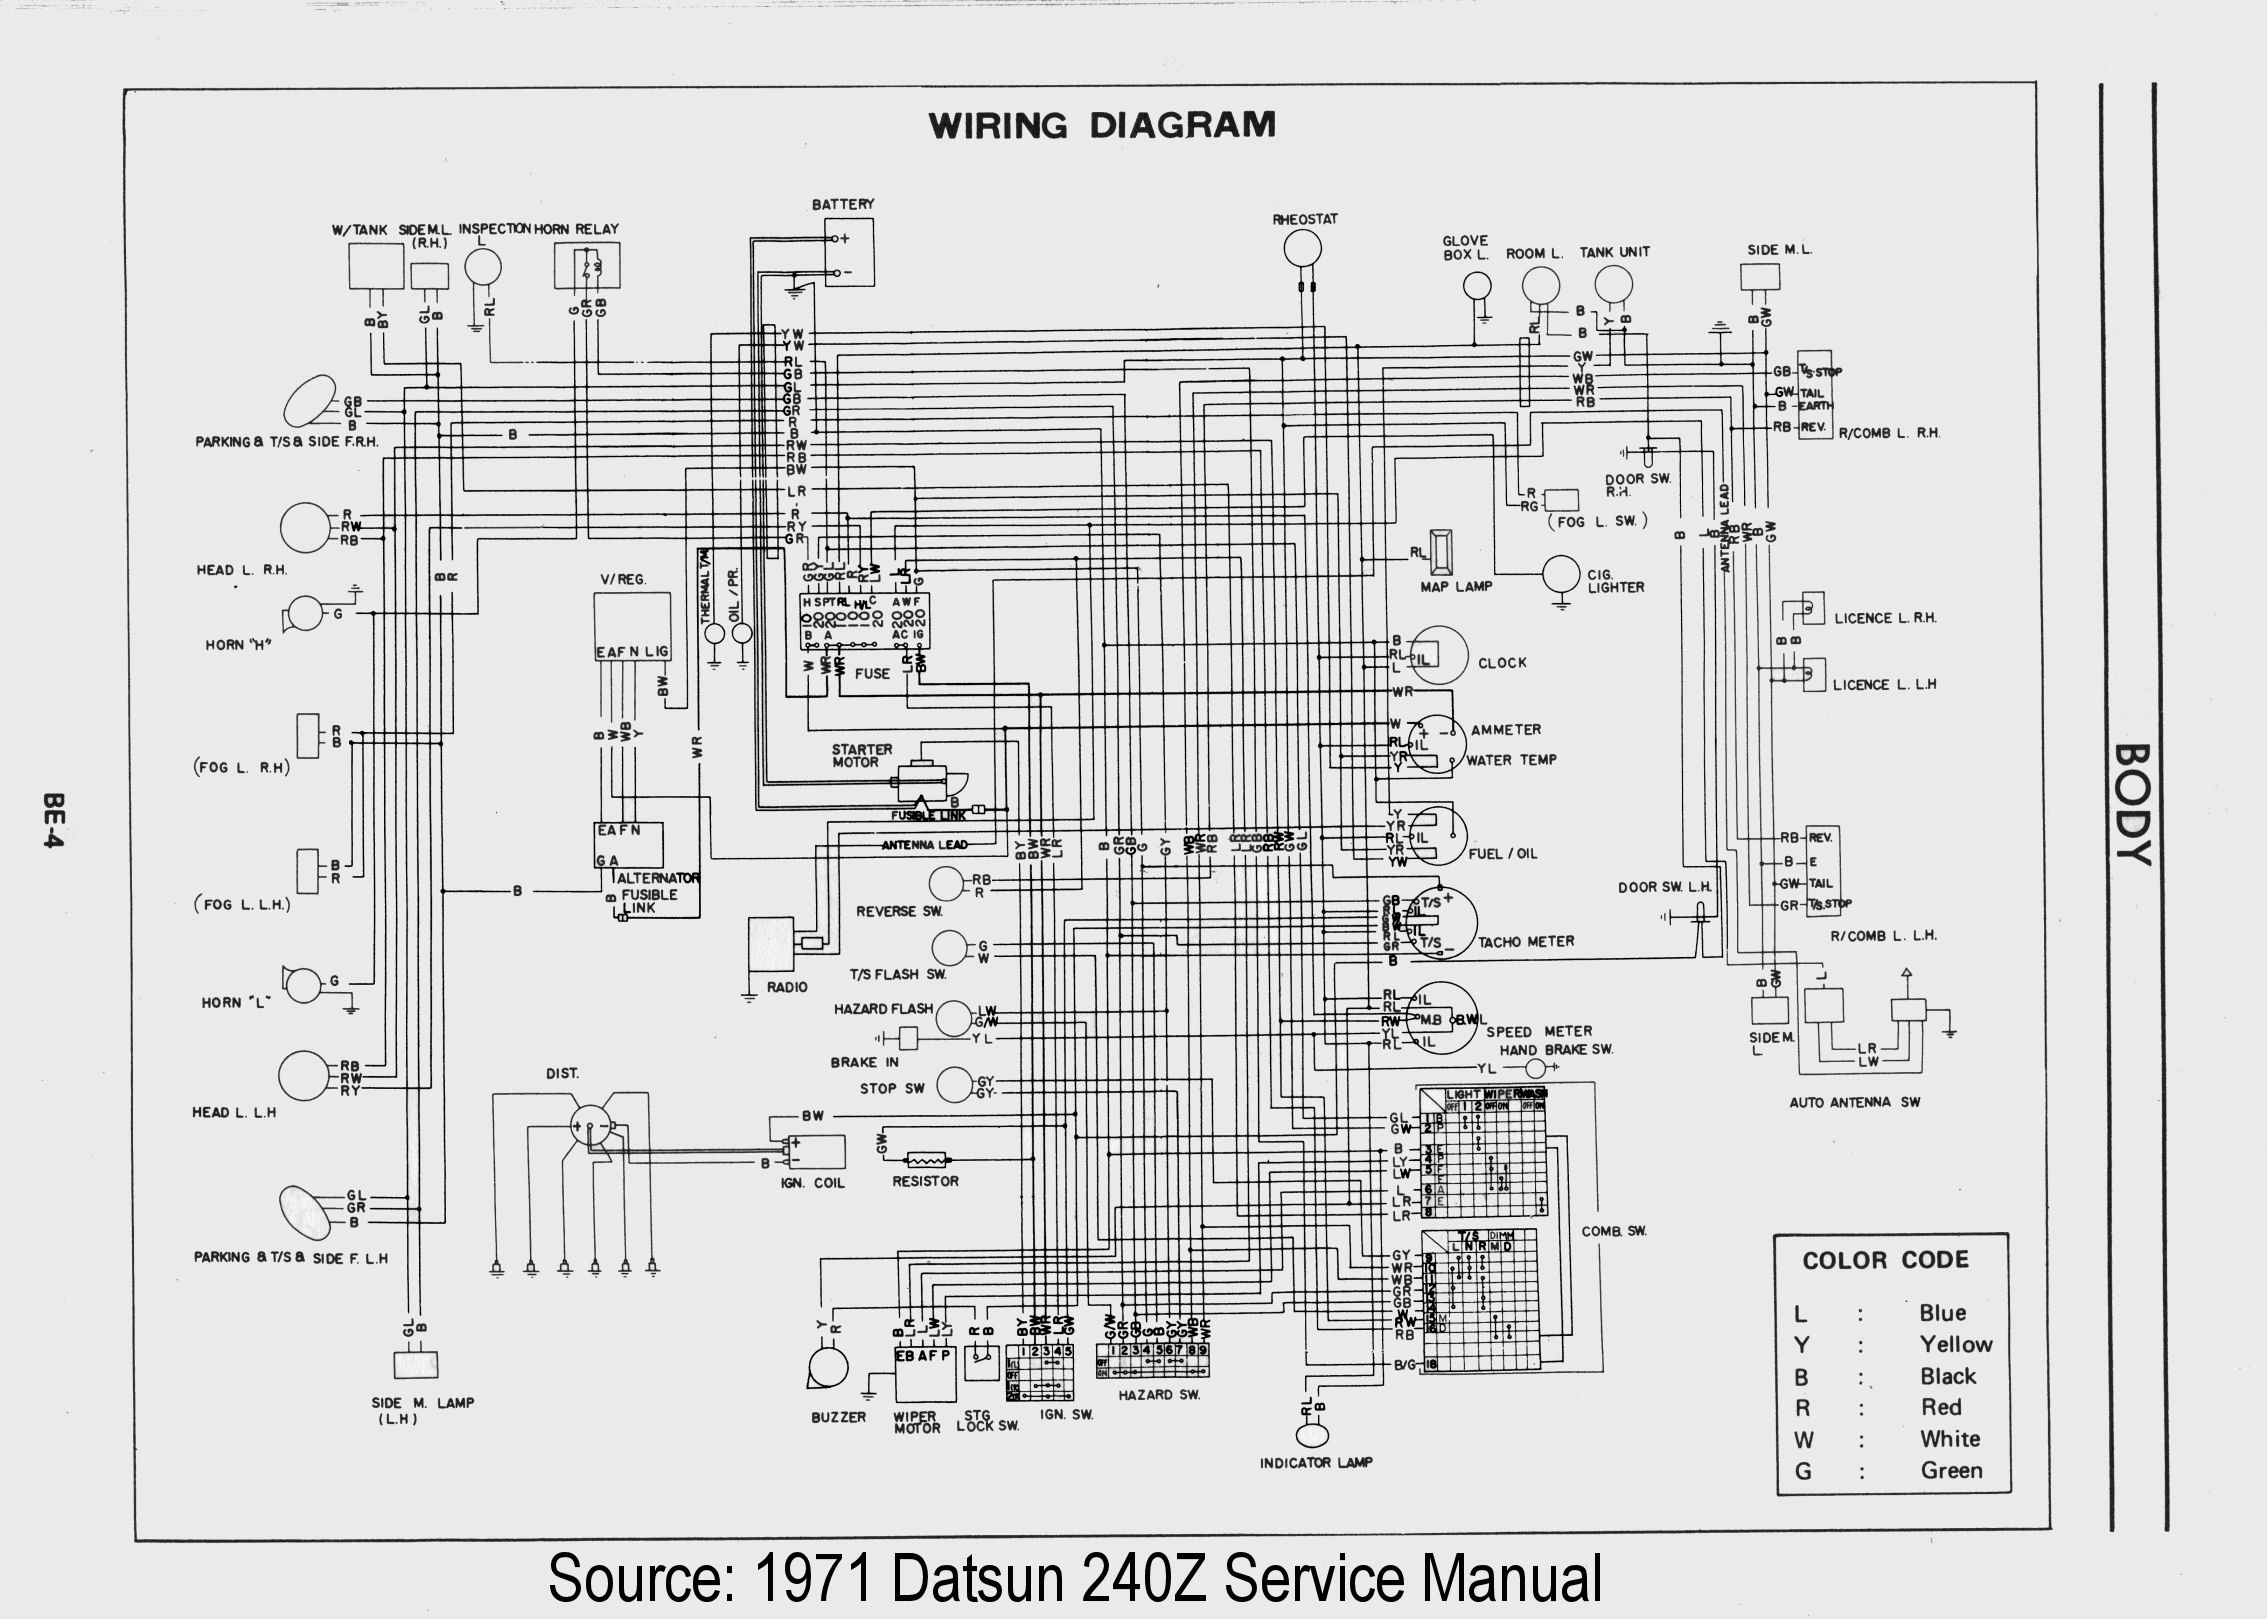 Wiring Diagram HiRes 2 240z wiring diagram 73 240z wiring diagram \u2022 wiring diagrams j  at alyssarenee.co